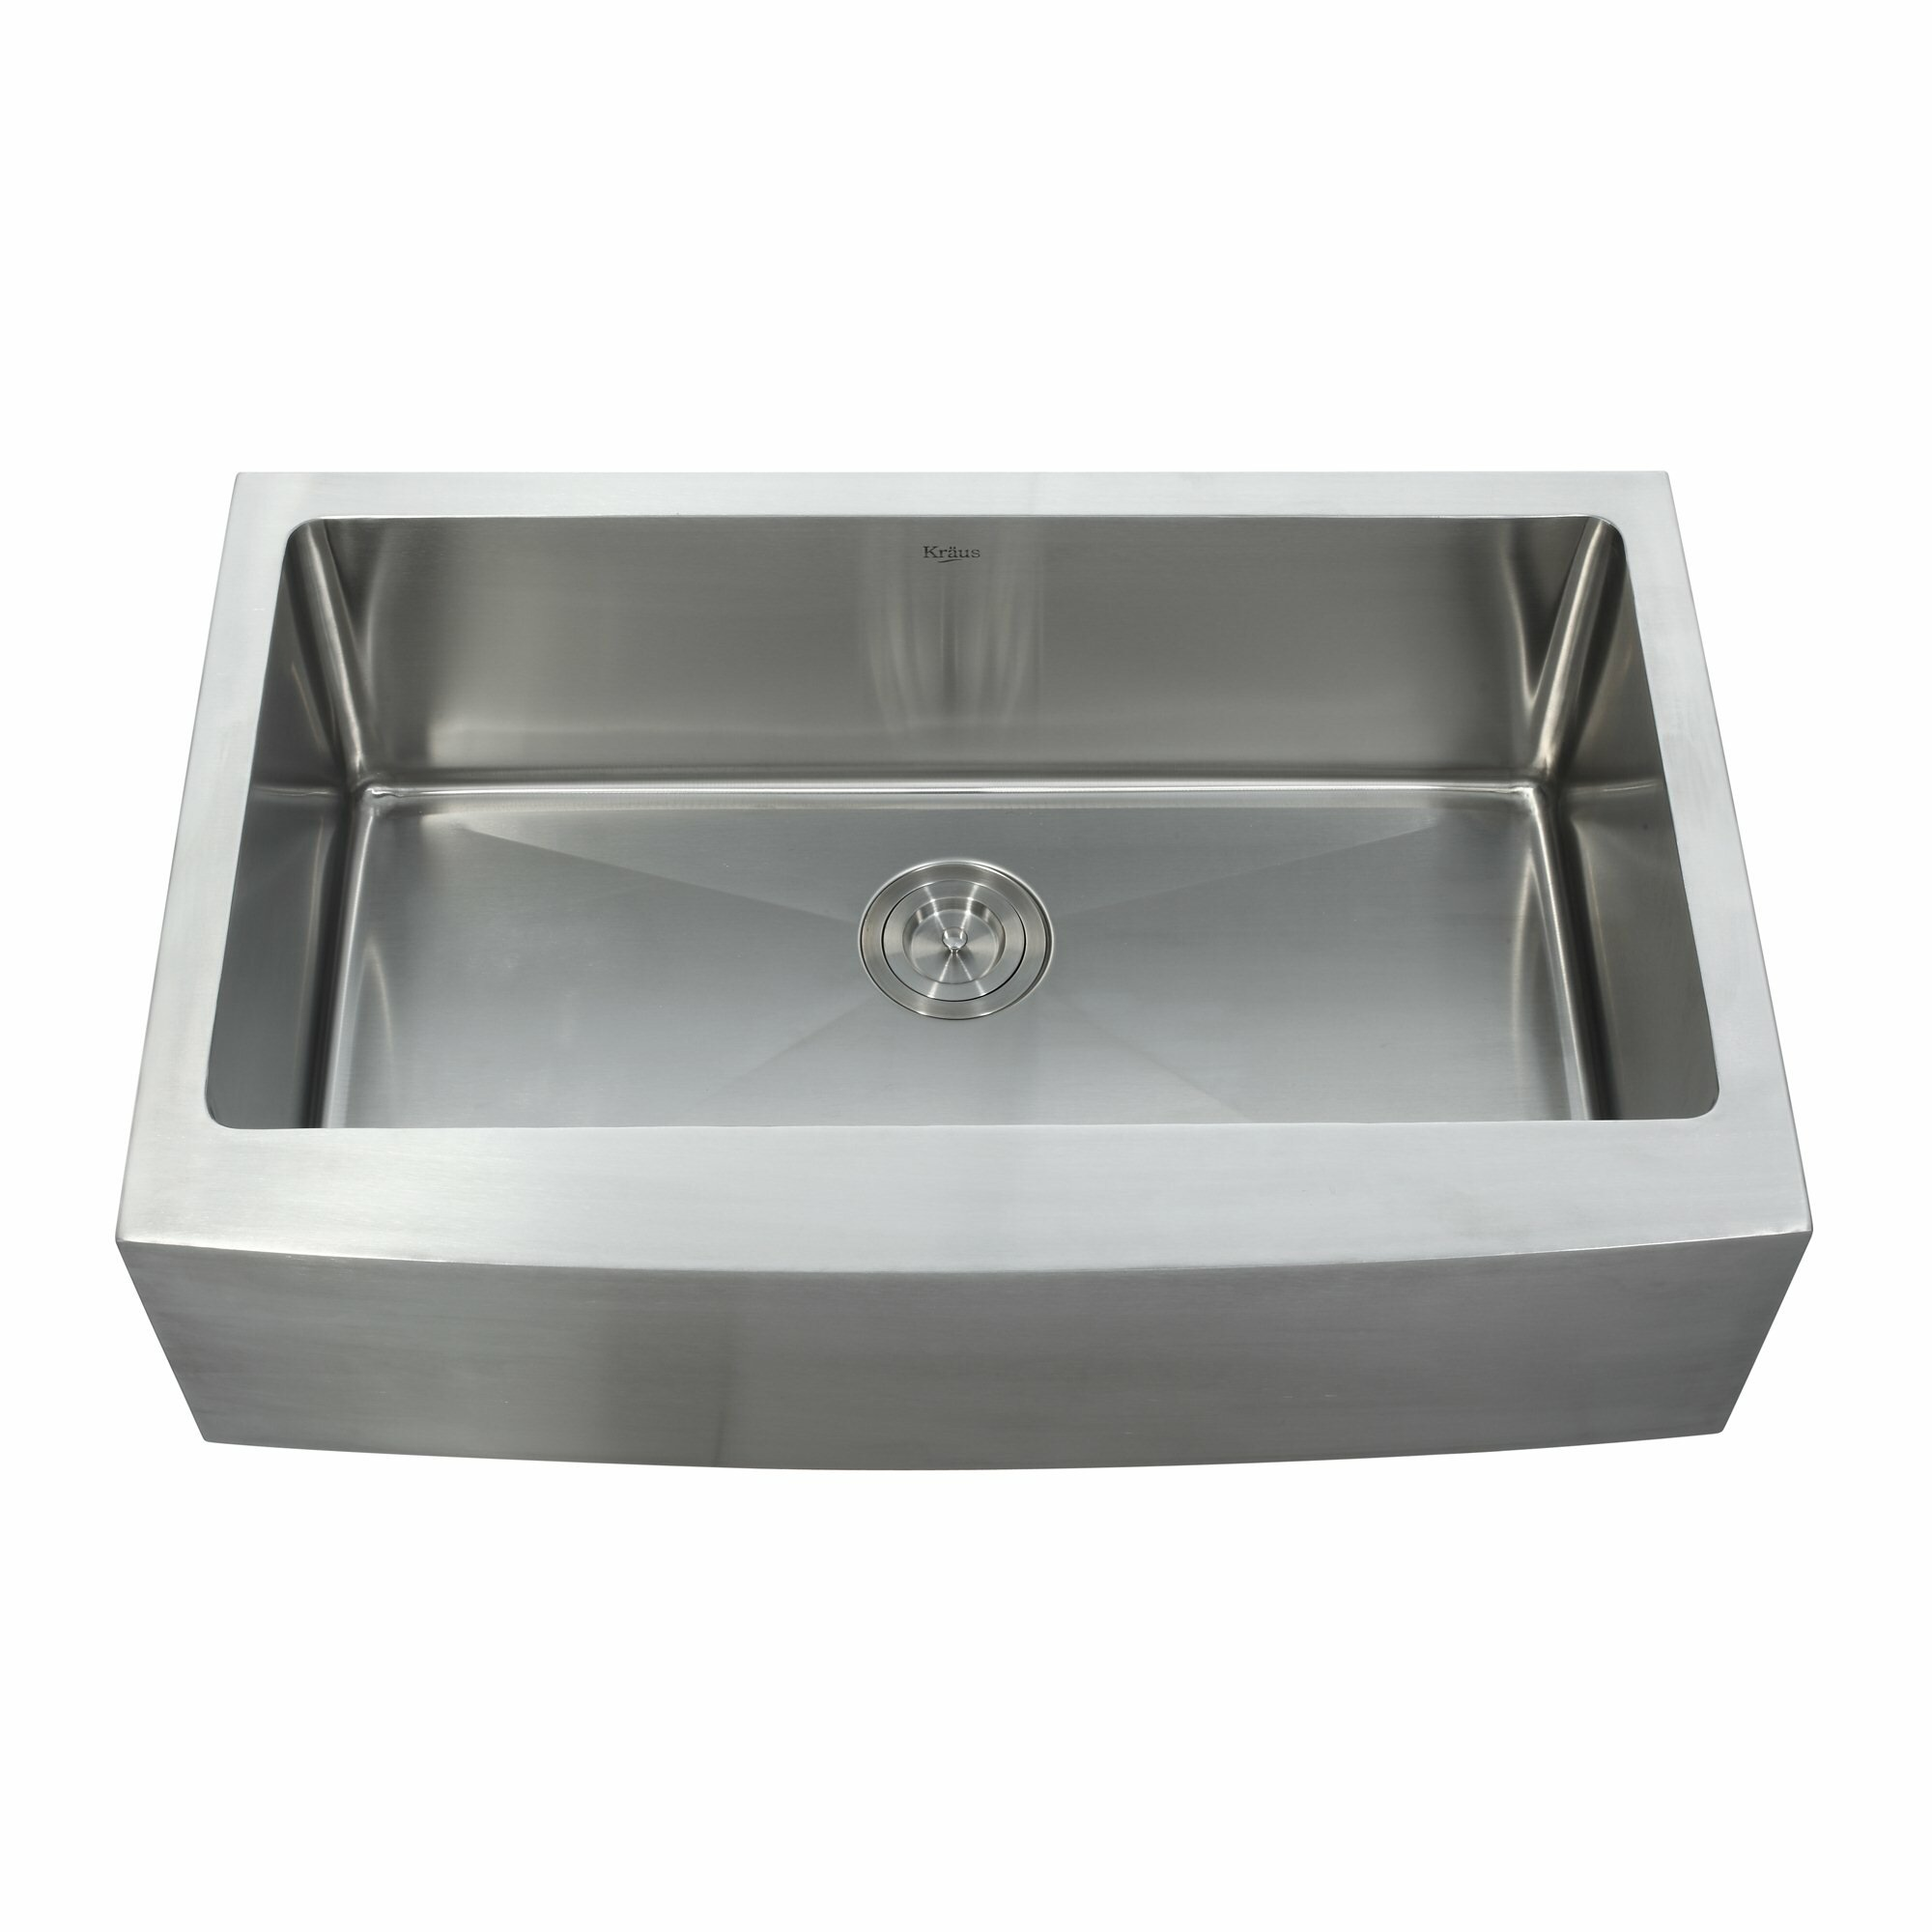 Farmhouse Sink With Faucet : Kraus Farmhouse Kitchen Sink with Faucet and Soap Dispenser & Reviews ...